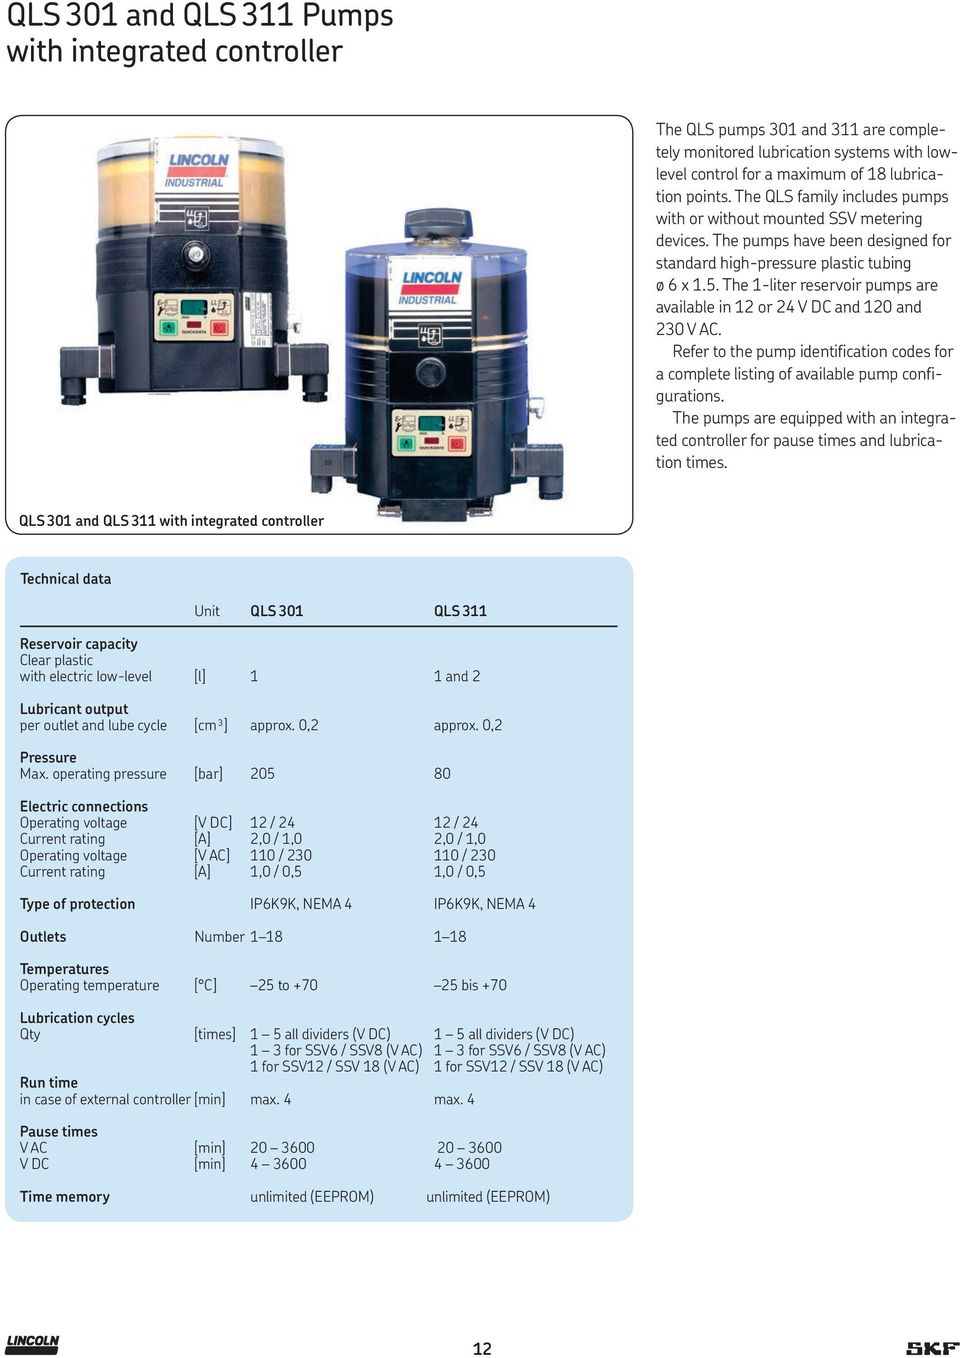 Lincoln Multi Line And Progressive Systems Pdf Reservoir Pump Controller The 1 Liter Pumps Are Available In 12 Or 24 V Dc 120